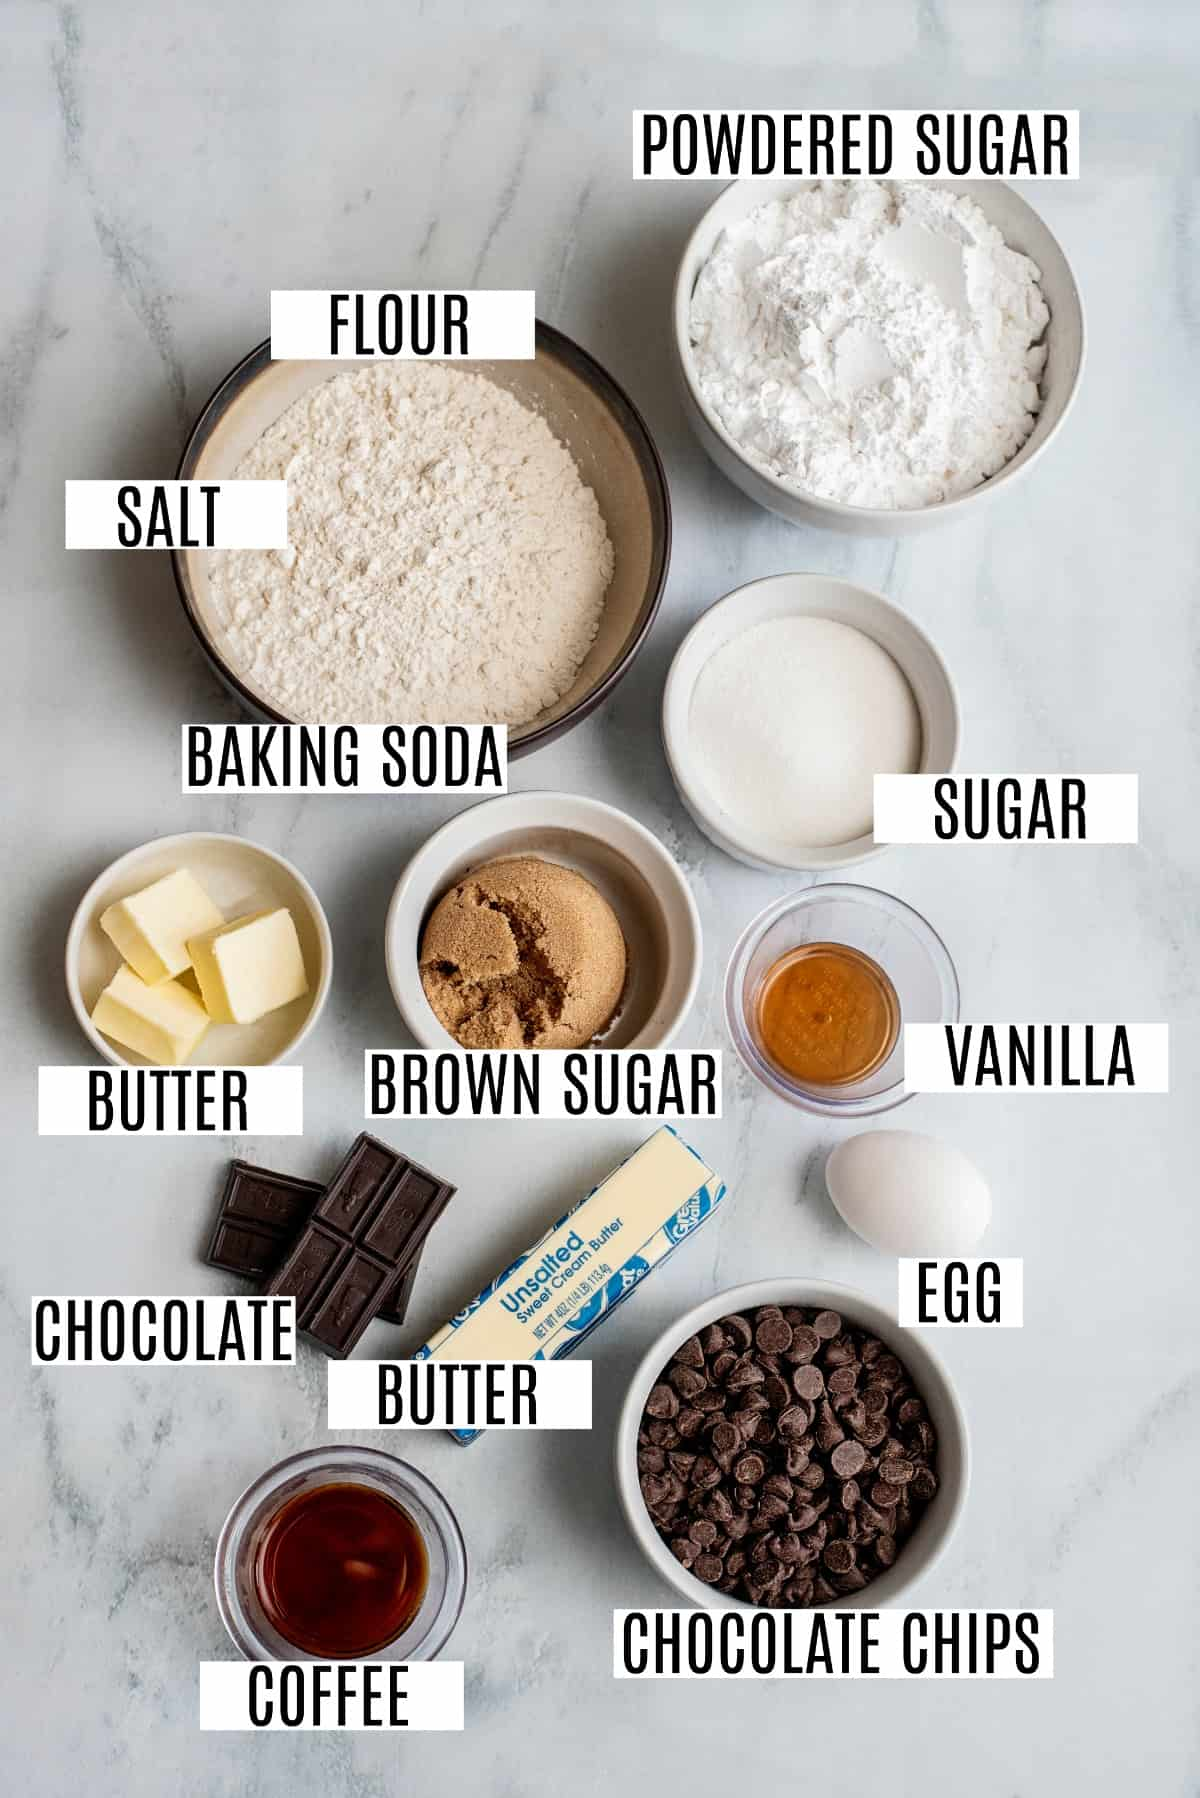 Ingredients needed to make chocolate chip sandwich cookies, including chocolate chips and butter.